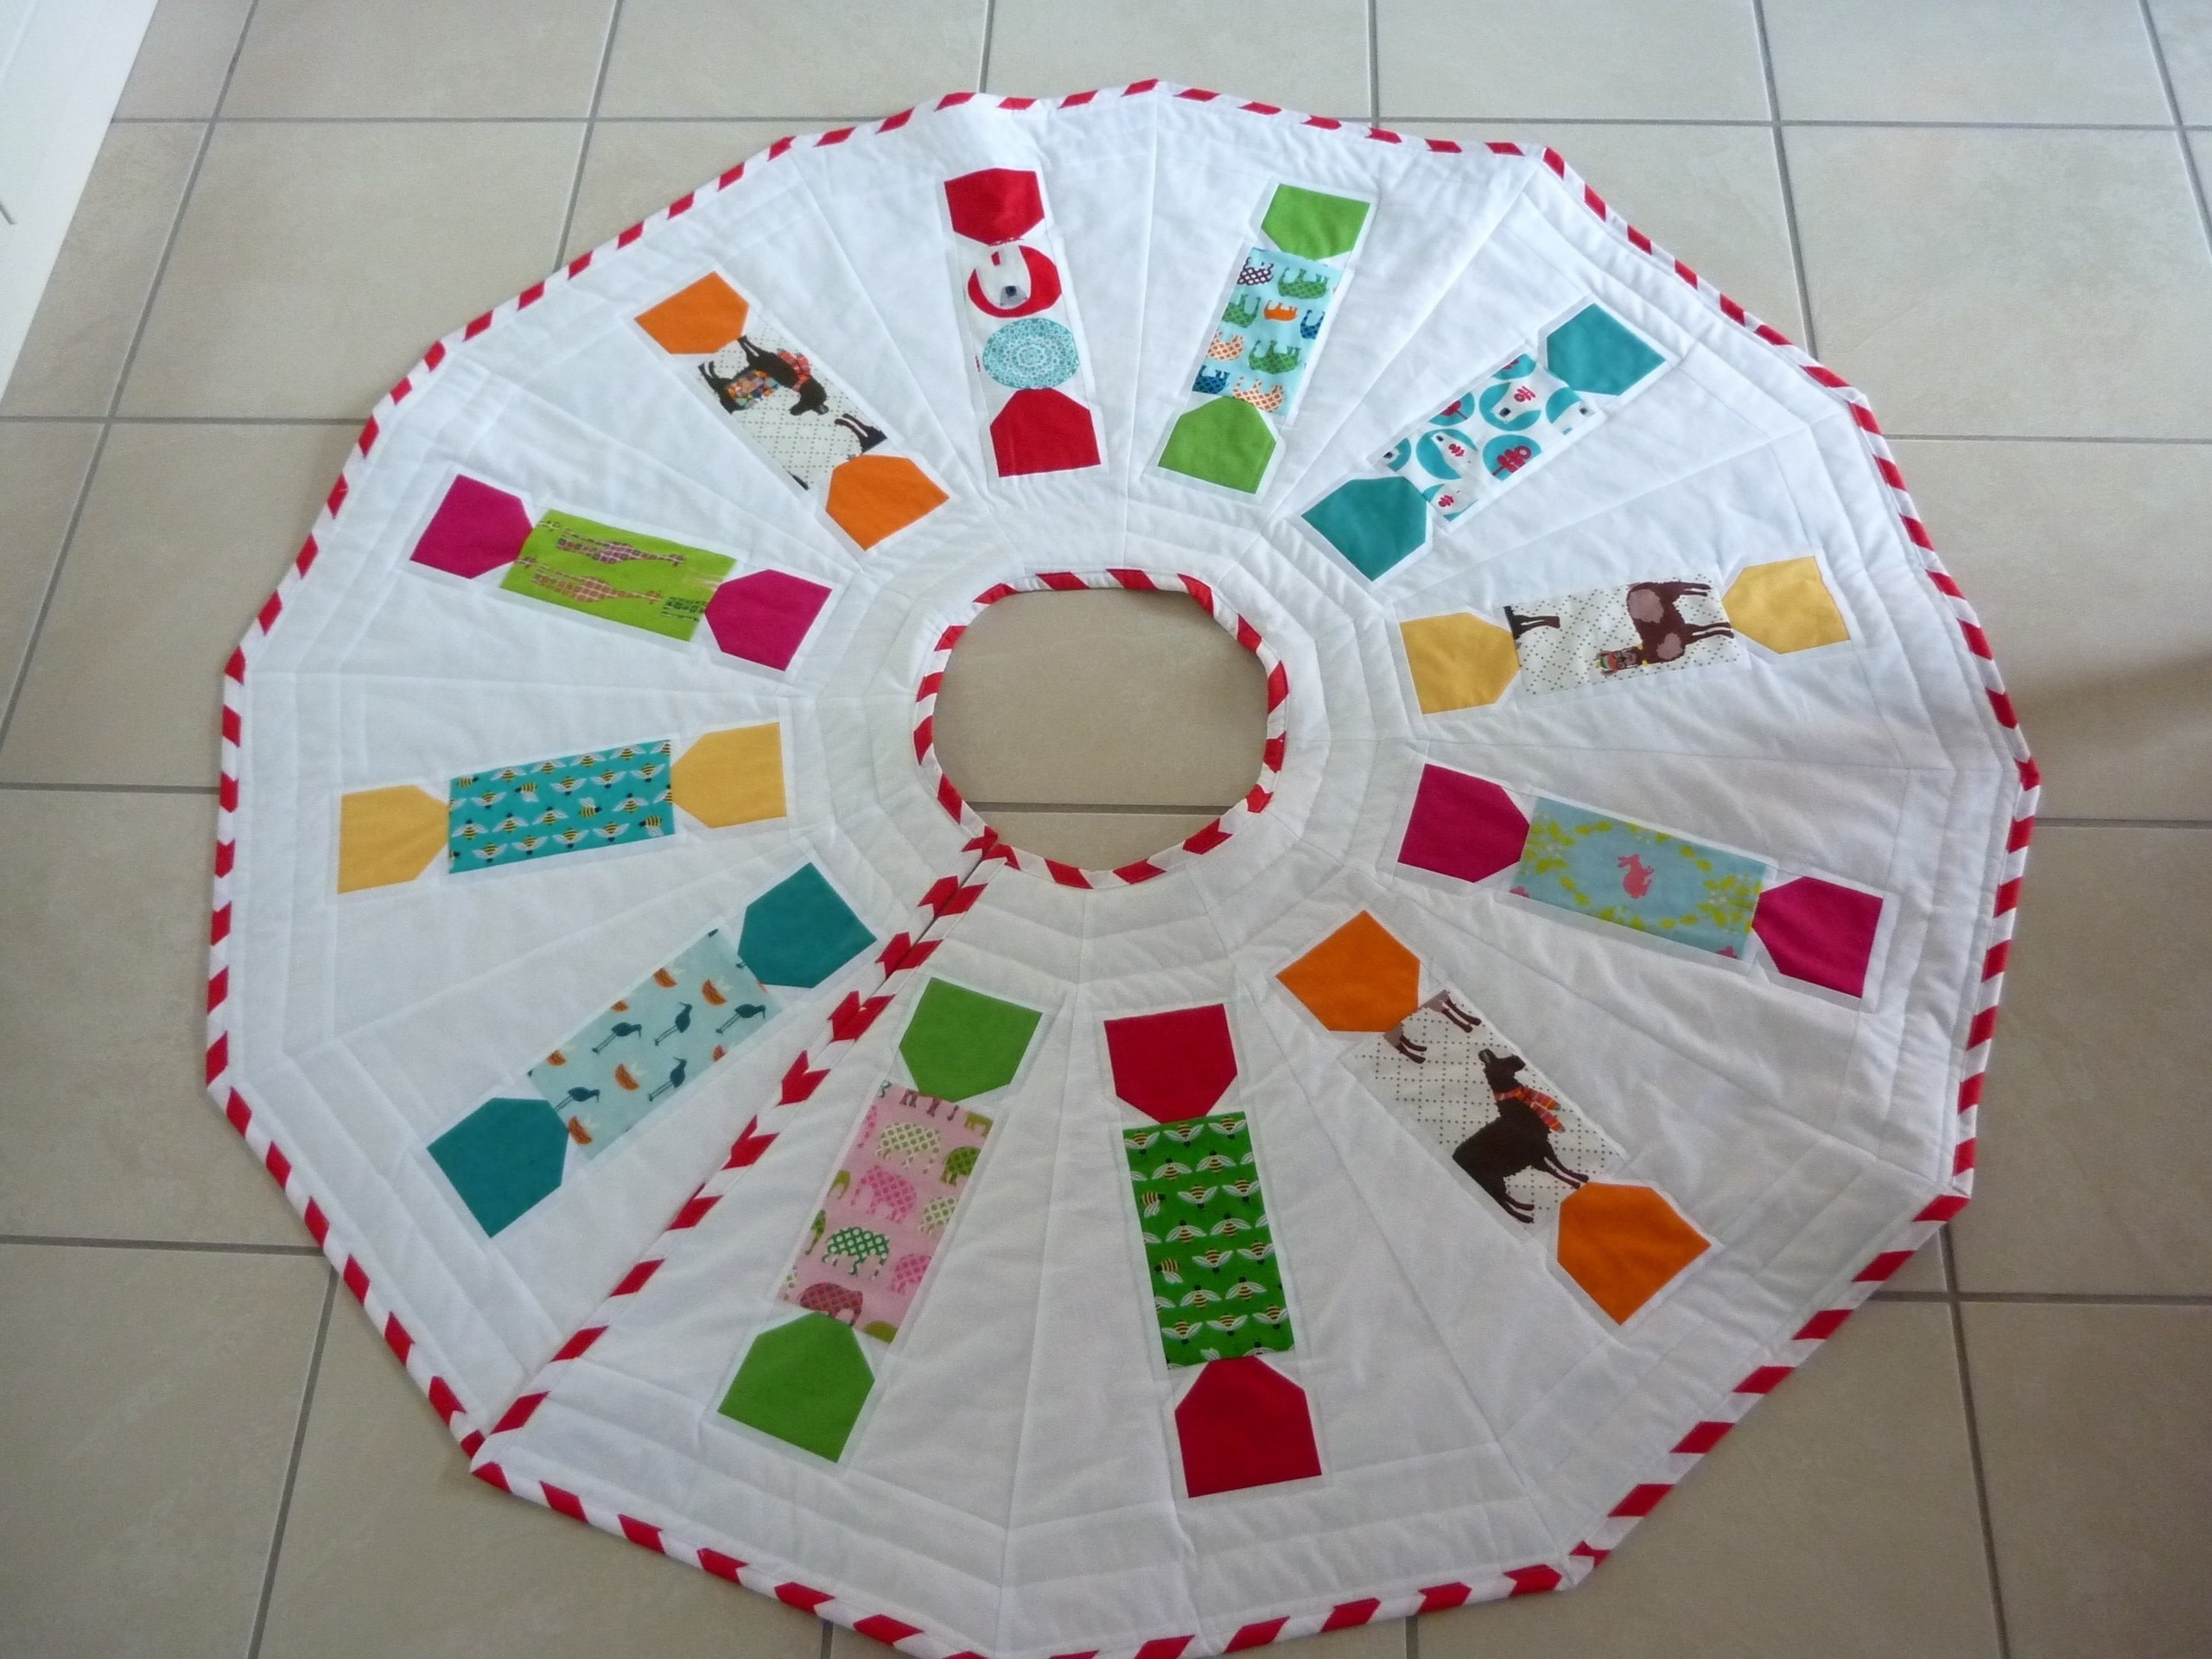 Tree Skirt Pattern Unique Animal Crackers Tree Skirt Pattern · How to Make A Of Tree Skirt Pattern Elegant Christmas Goose Tree Skirt & Card Holder